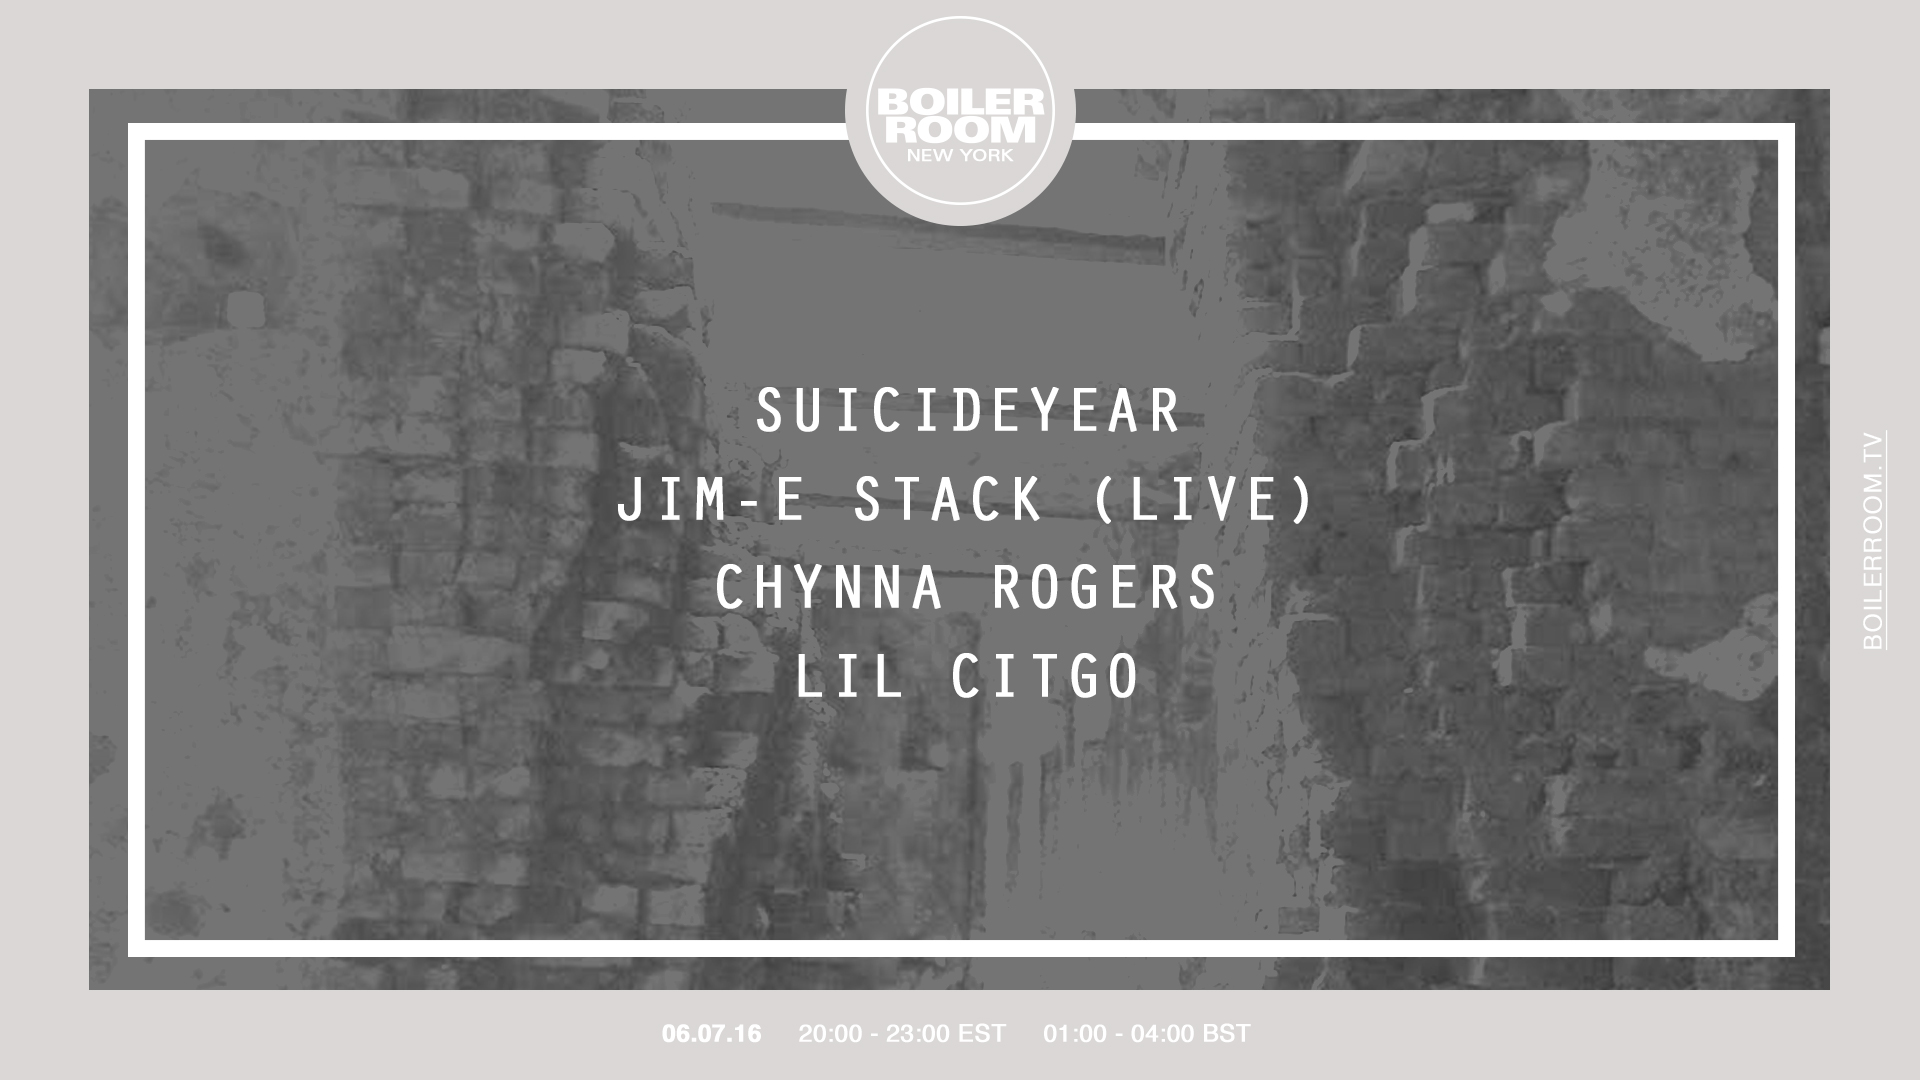 New York: Suicideyear, Jim-E Stack, Chynna Rogers & Lil Citgo Flyer Image